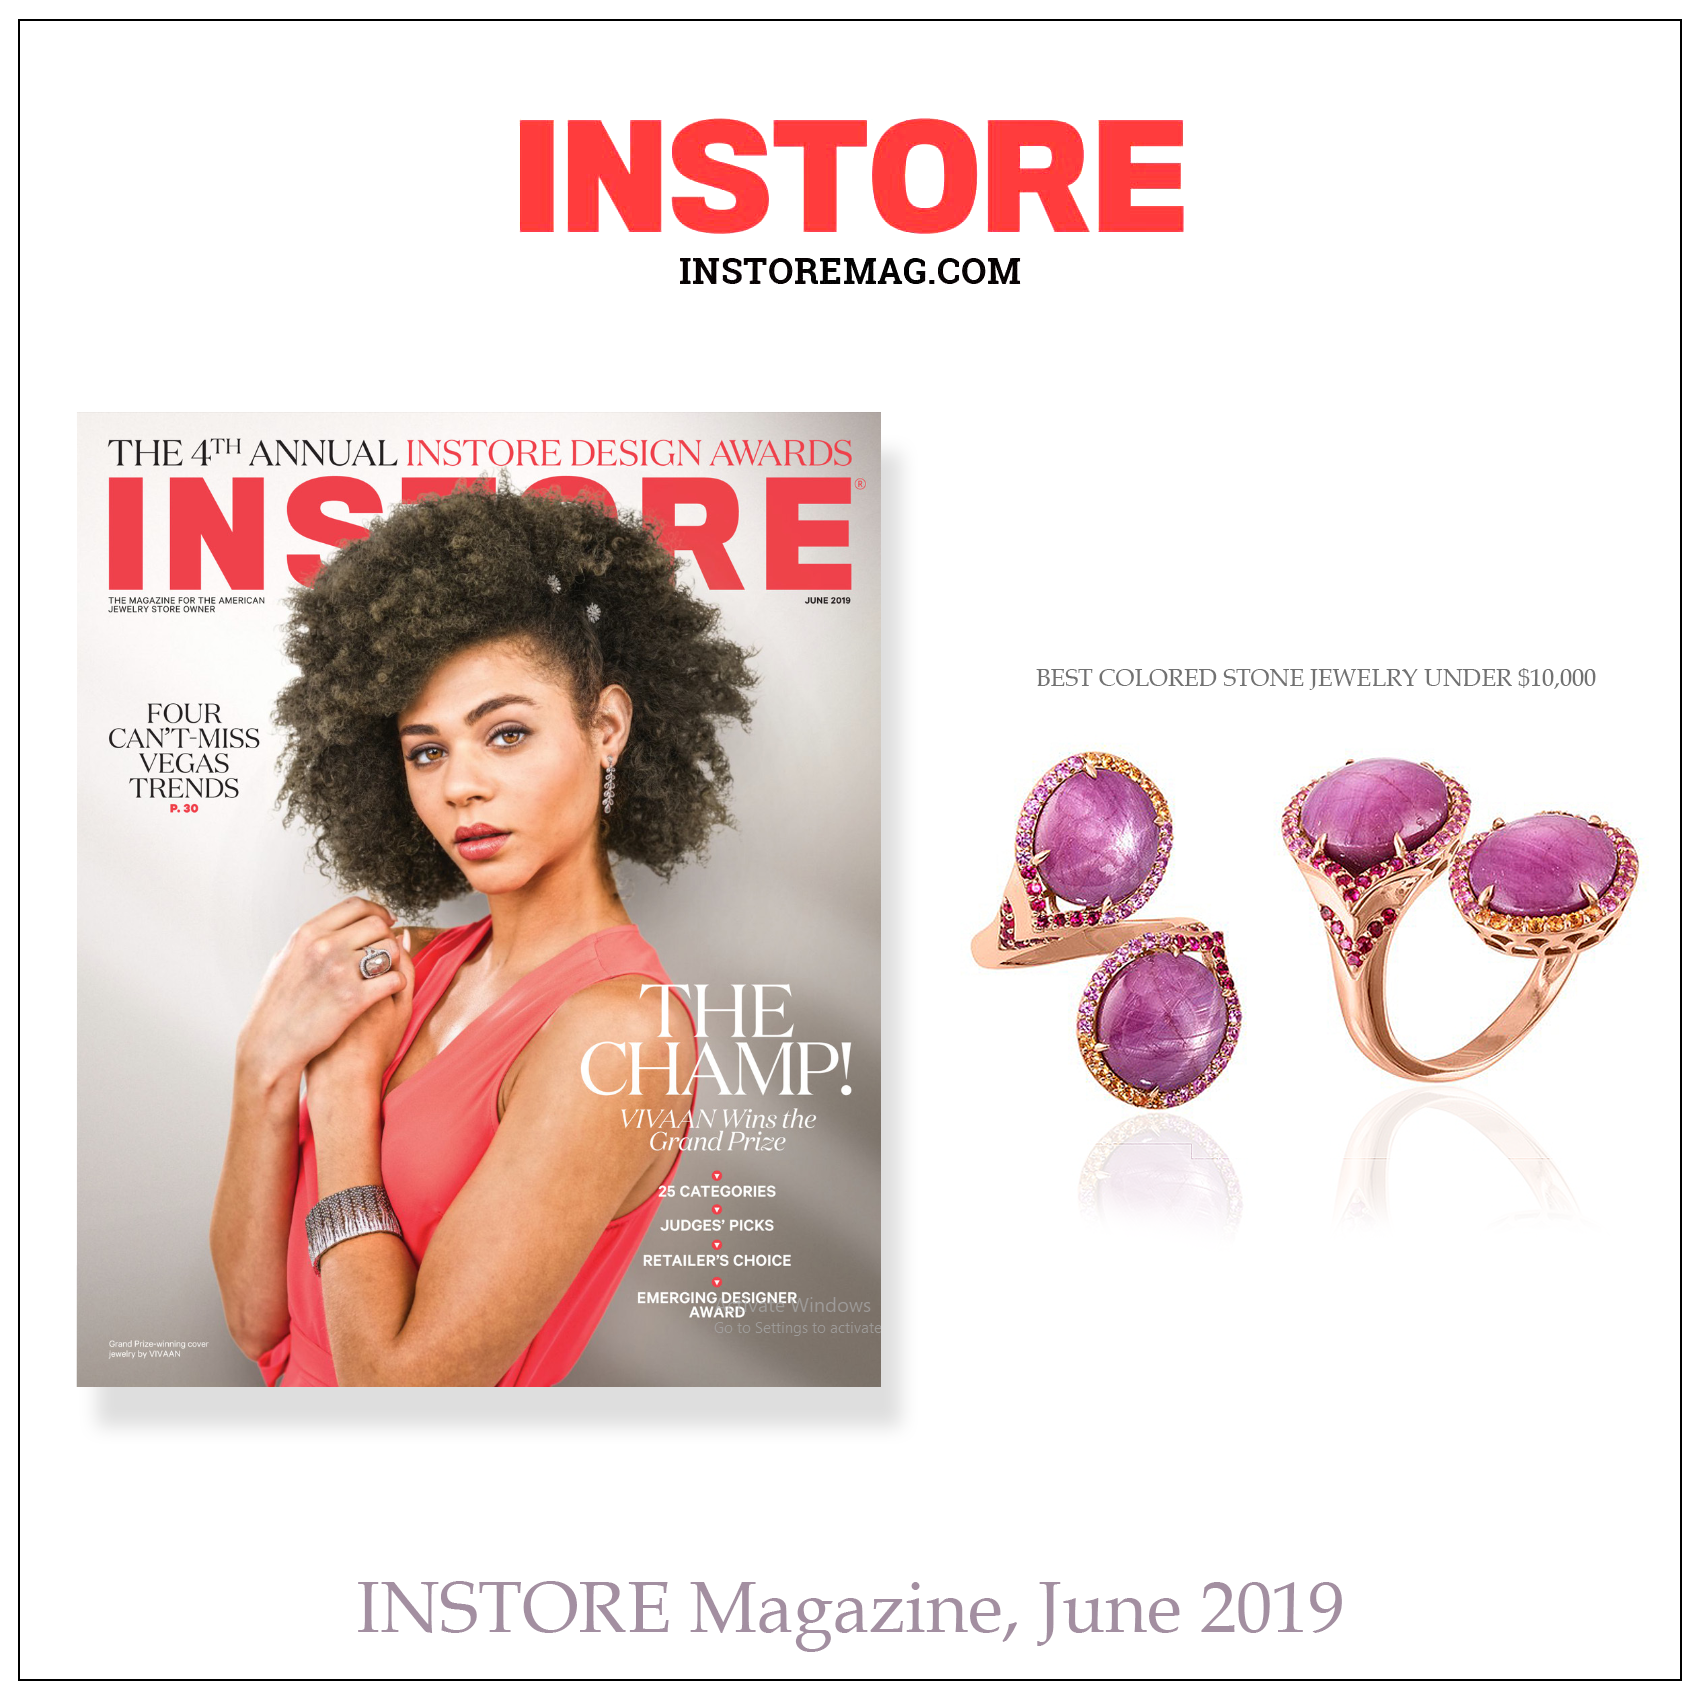 instore-magazine-june-2019-star-ruby-ring.png